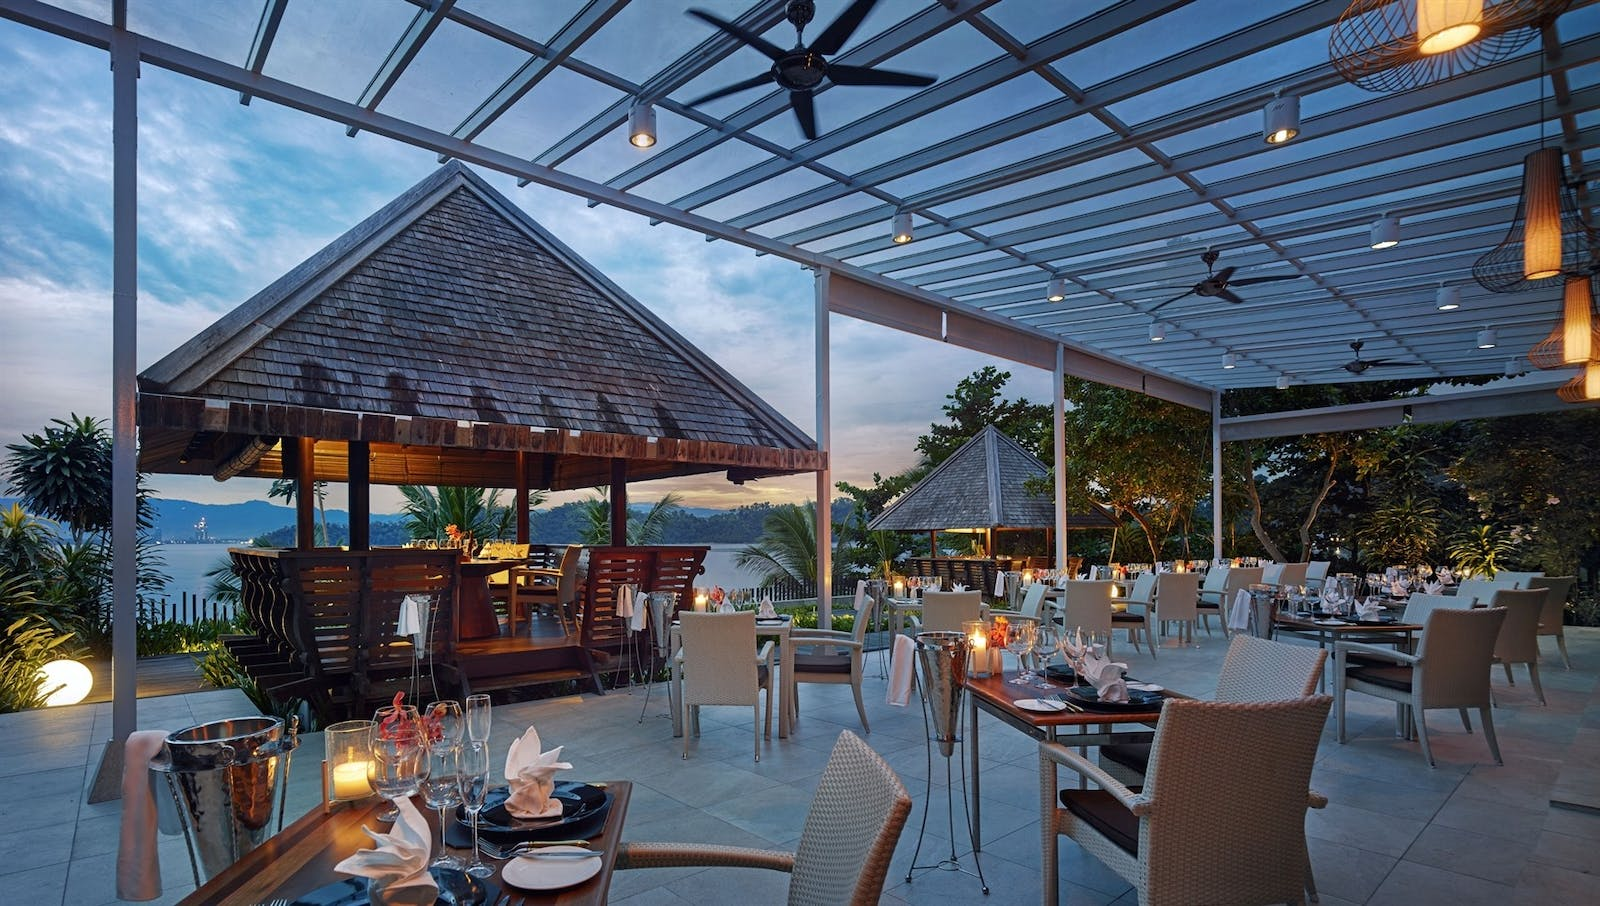 Fishermans Cove Restaurantat Gaya Island Resort Borneo